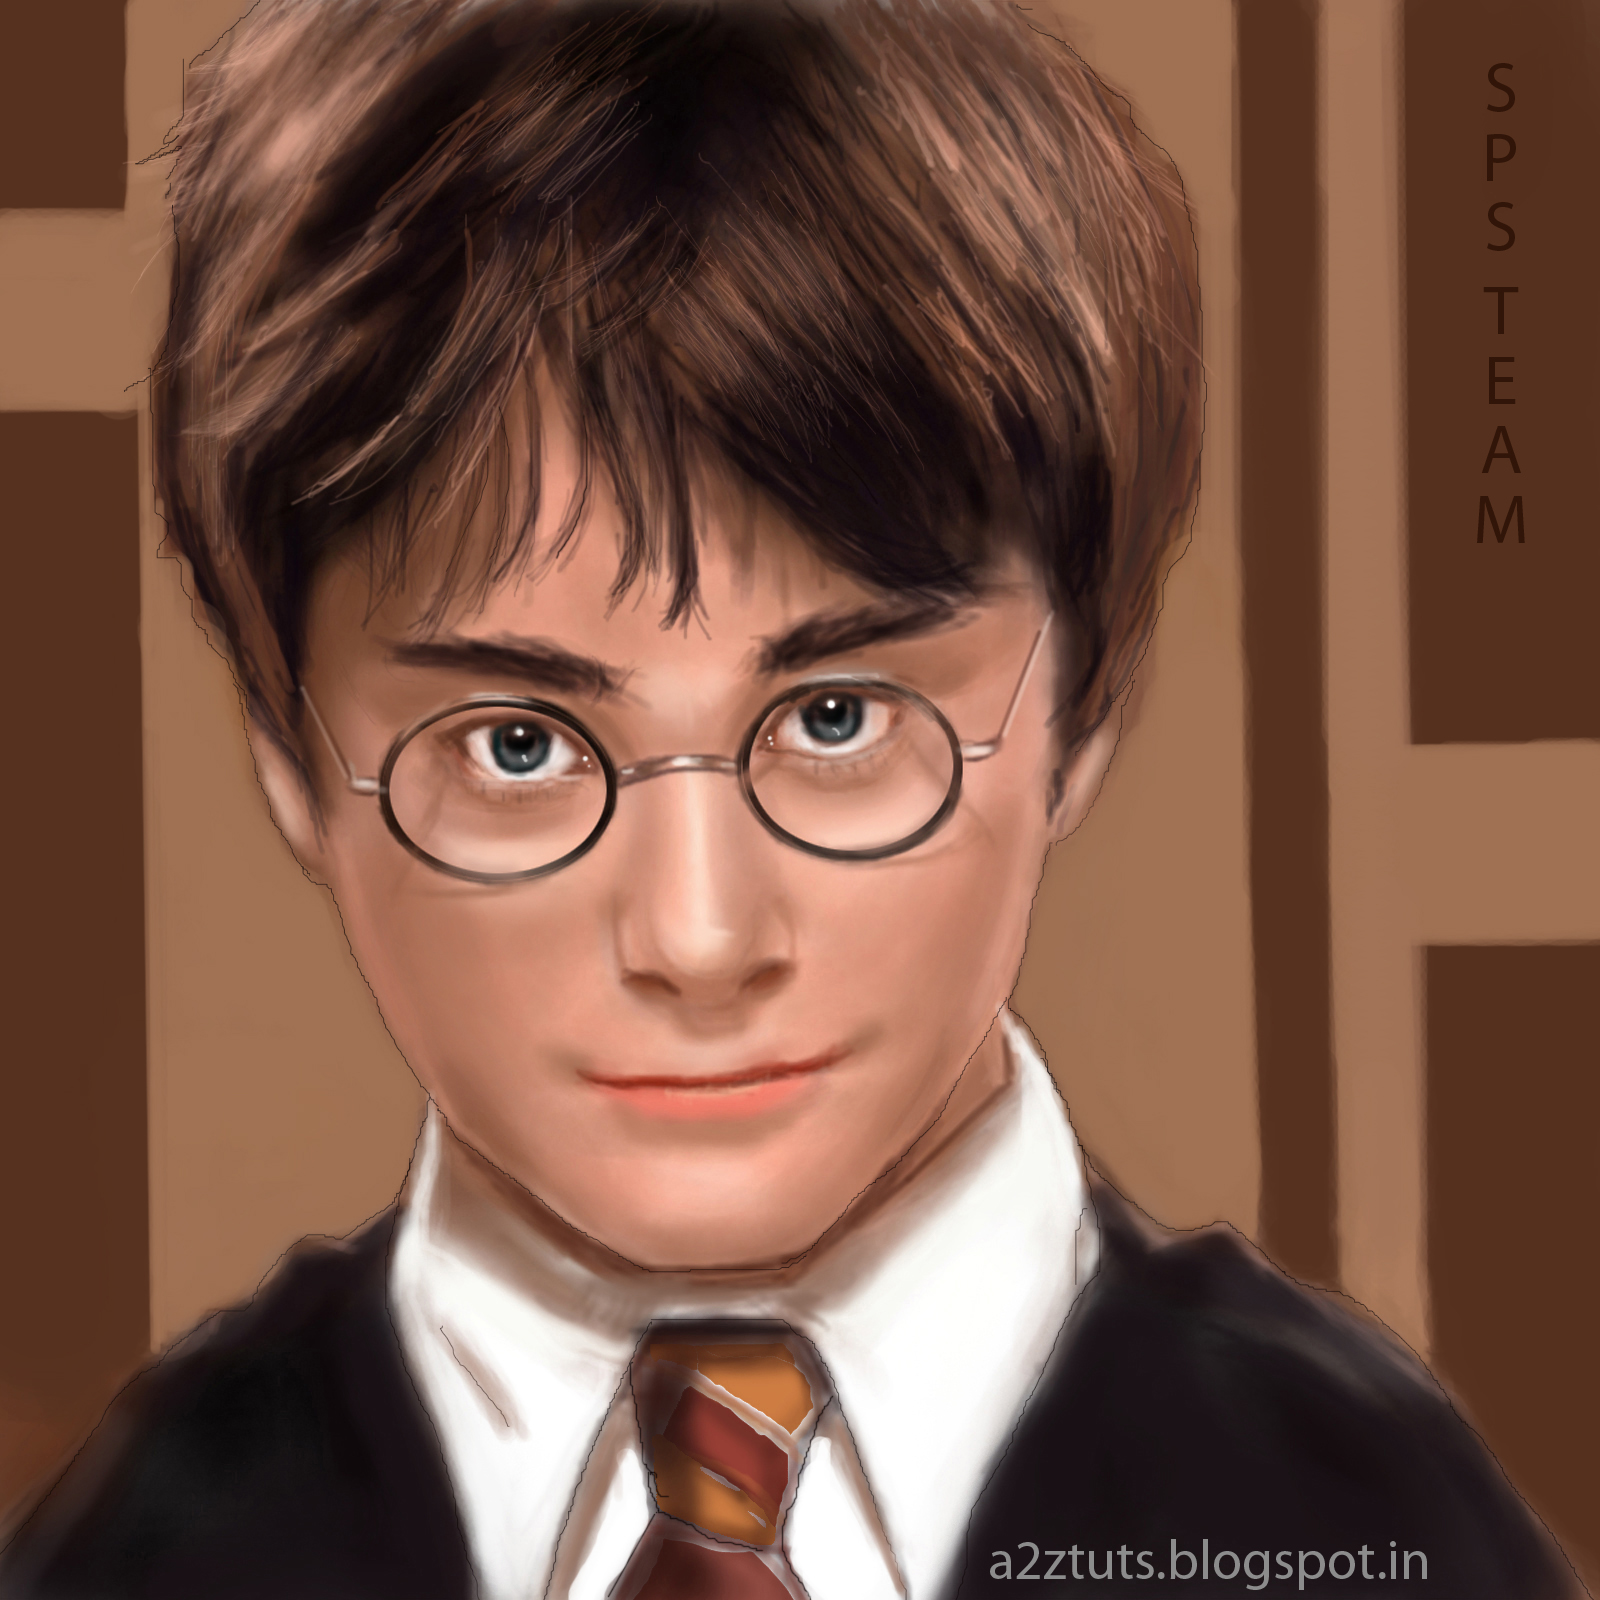 DIGITAL PAINTING OF HARRY POTTER